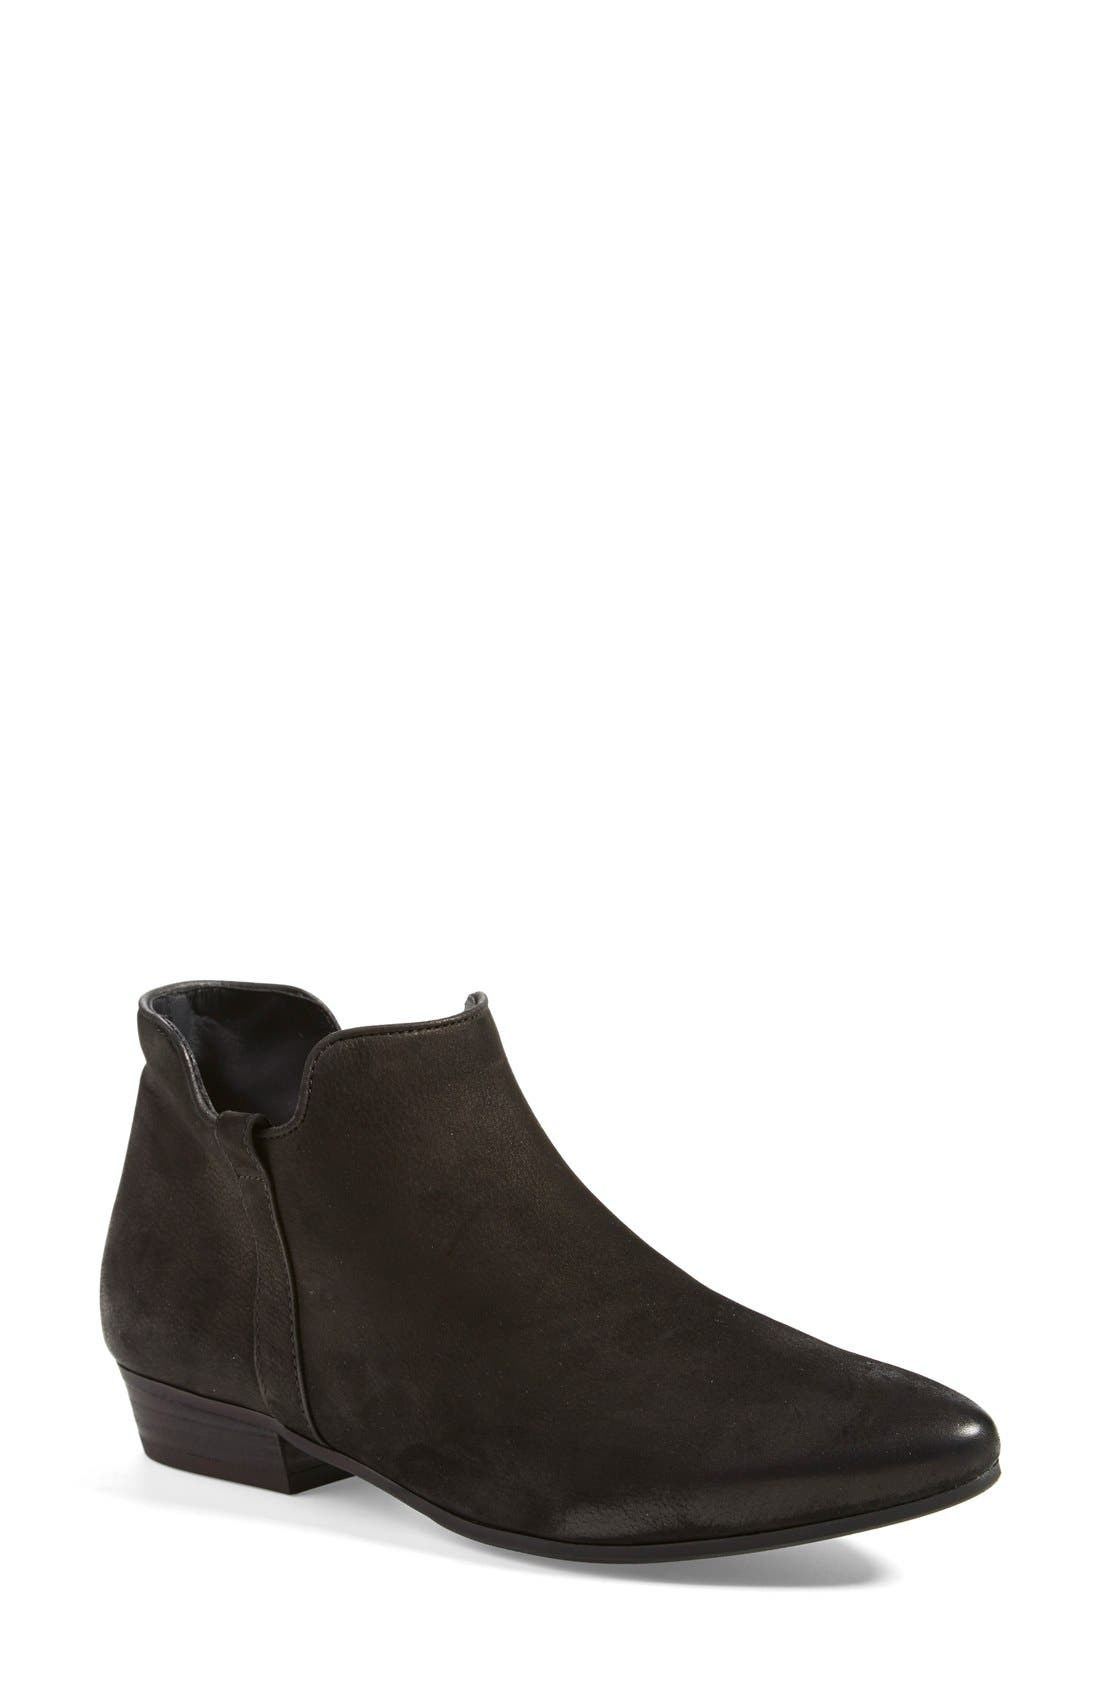 Alternate Image 1 Selected - Paul Green 'Barnes' Ankle Bootie (Women)